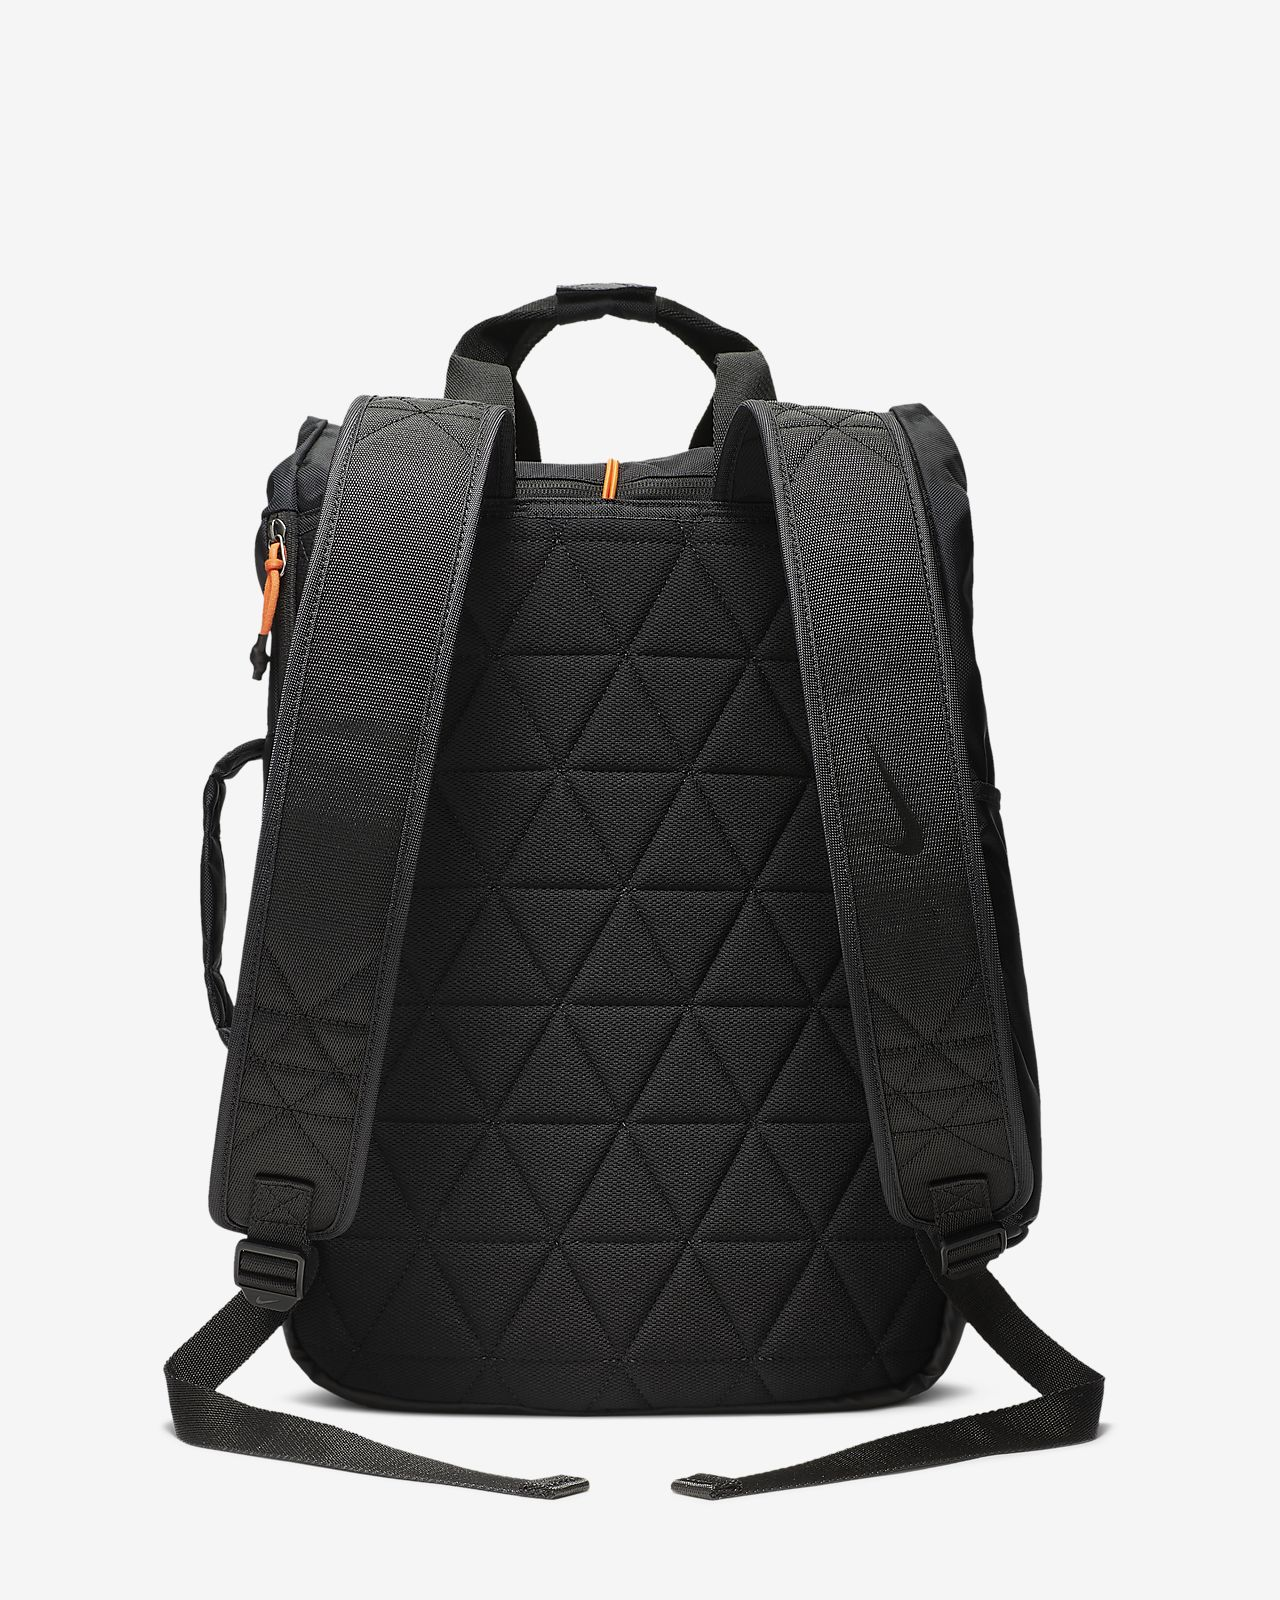 4823a3dbd481 Nike Vapor Energy 2.0 Training Backpack. Nike.com HU